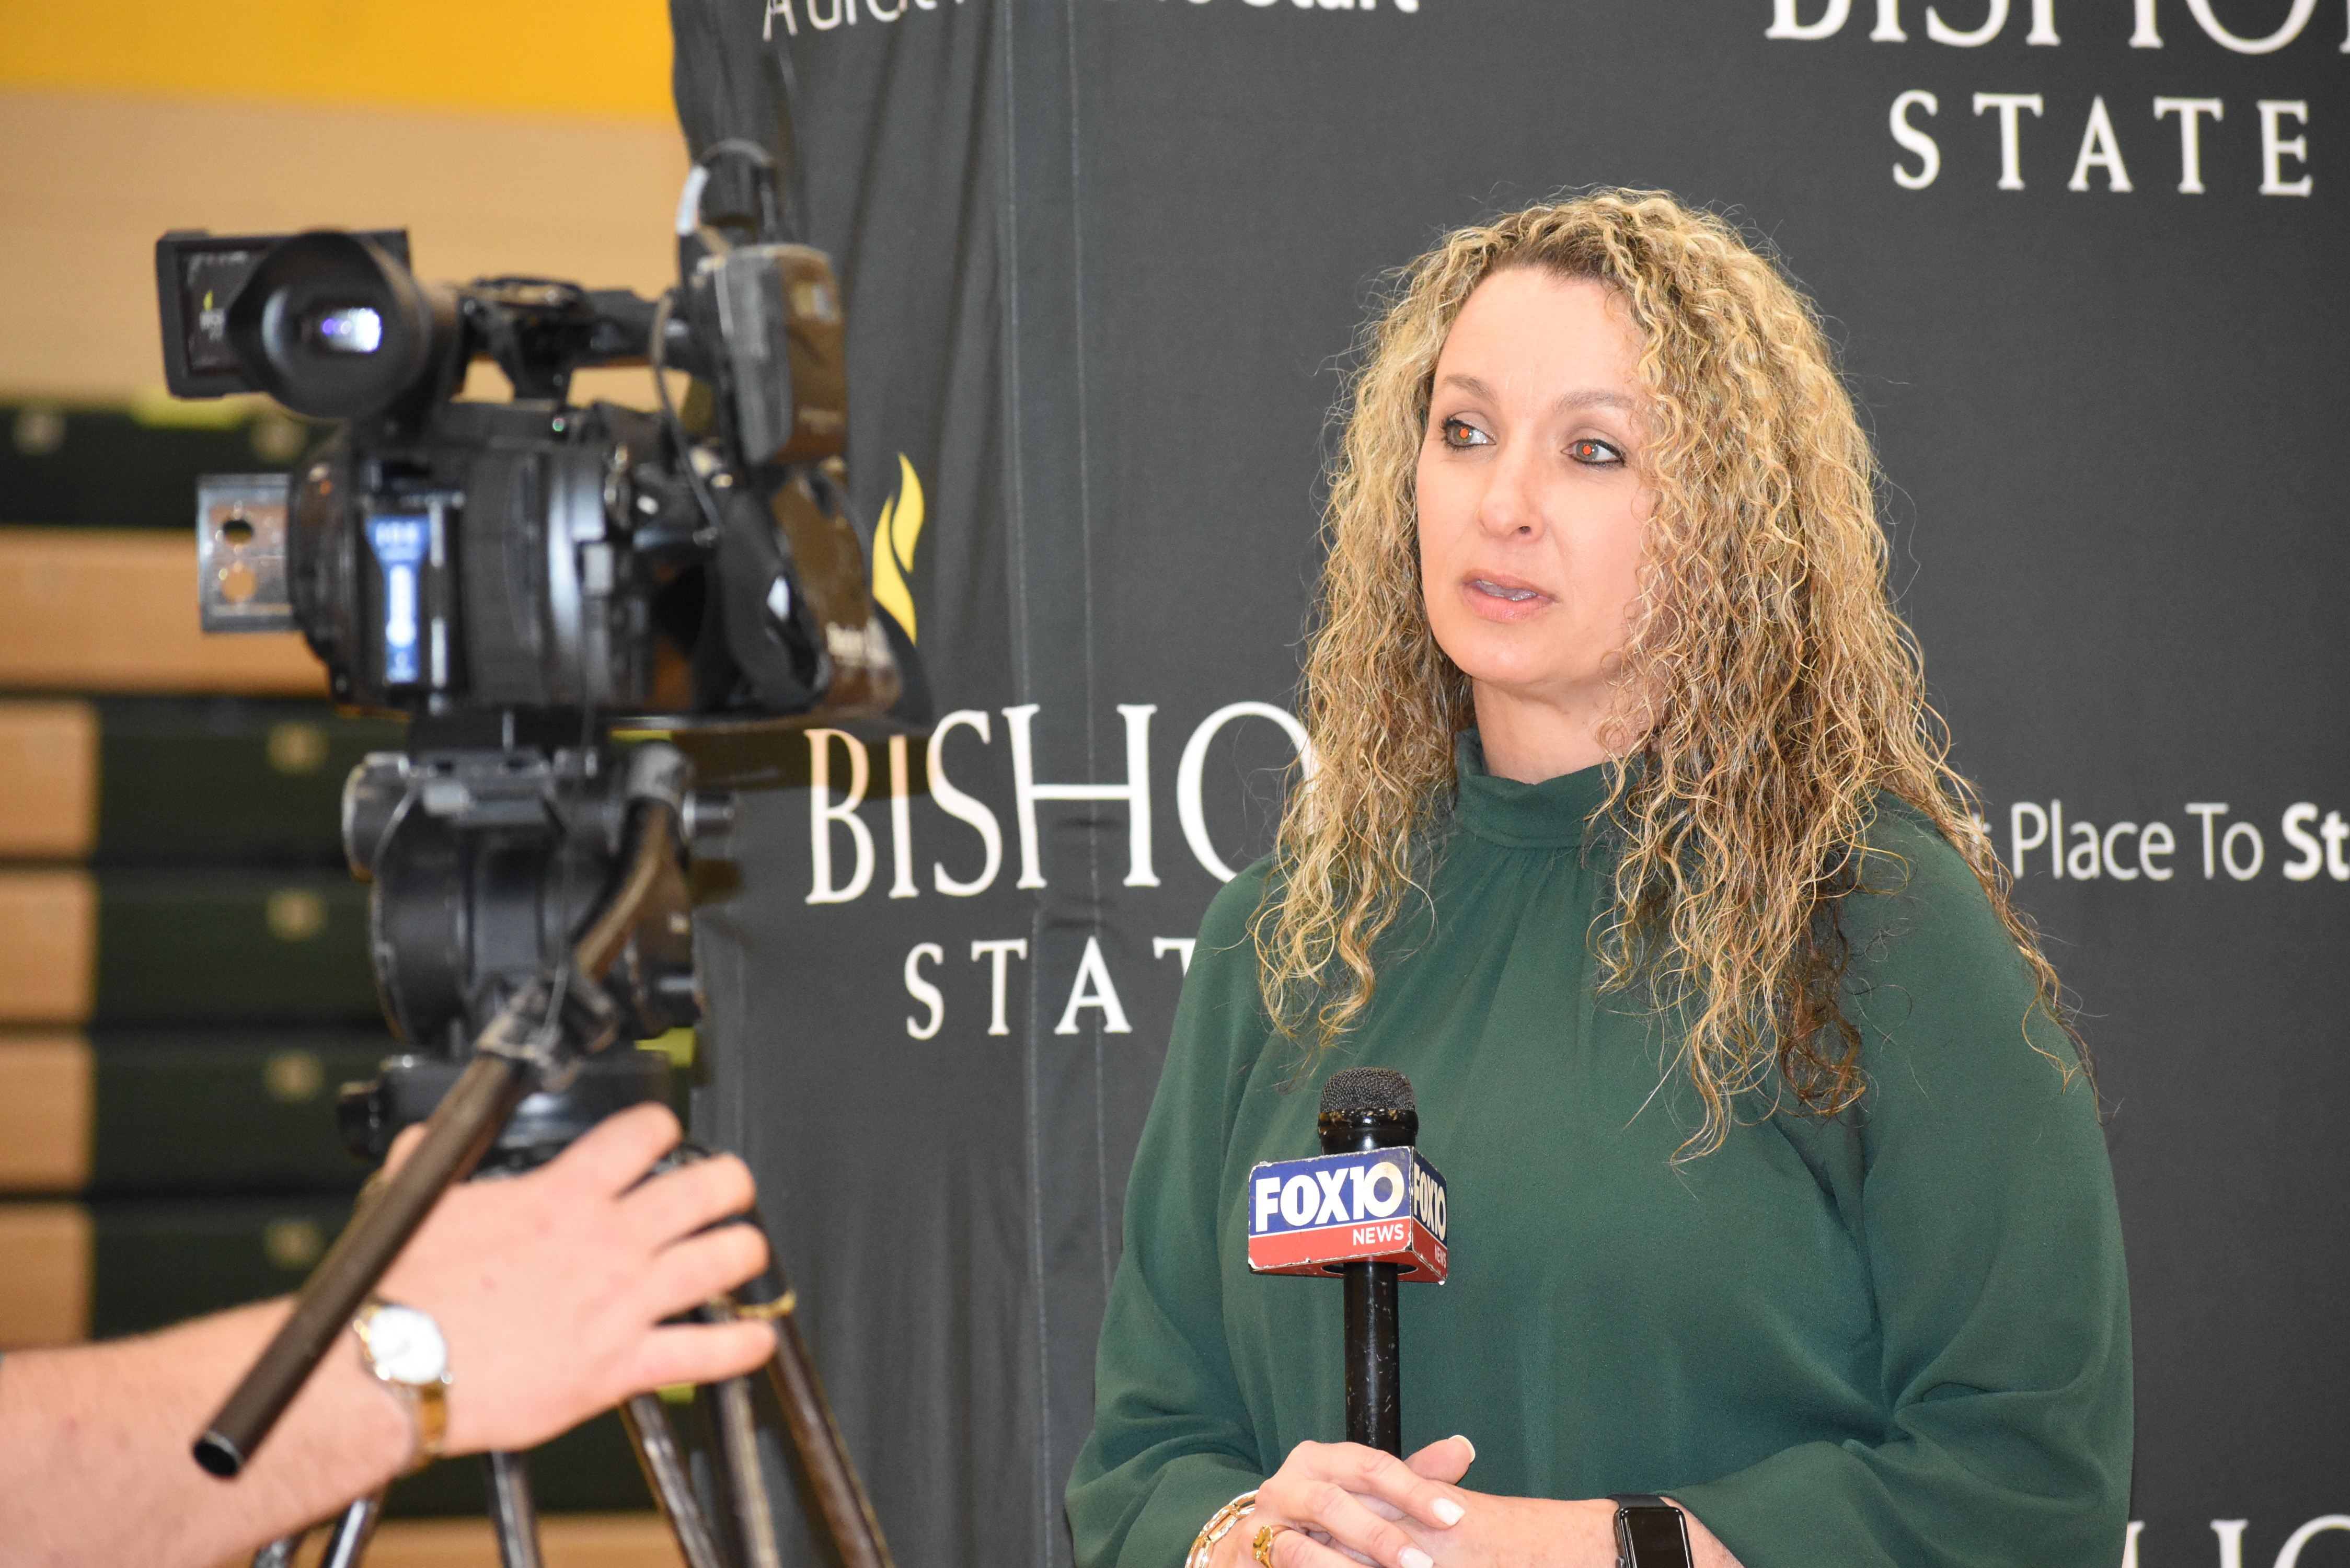 Blonde woman speaking into microphone looking at camera